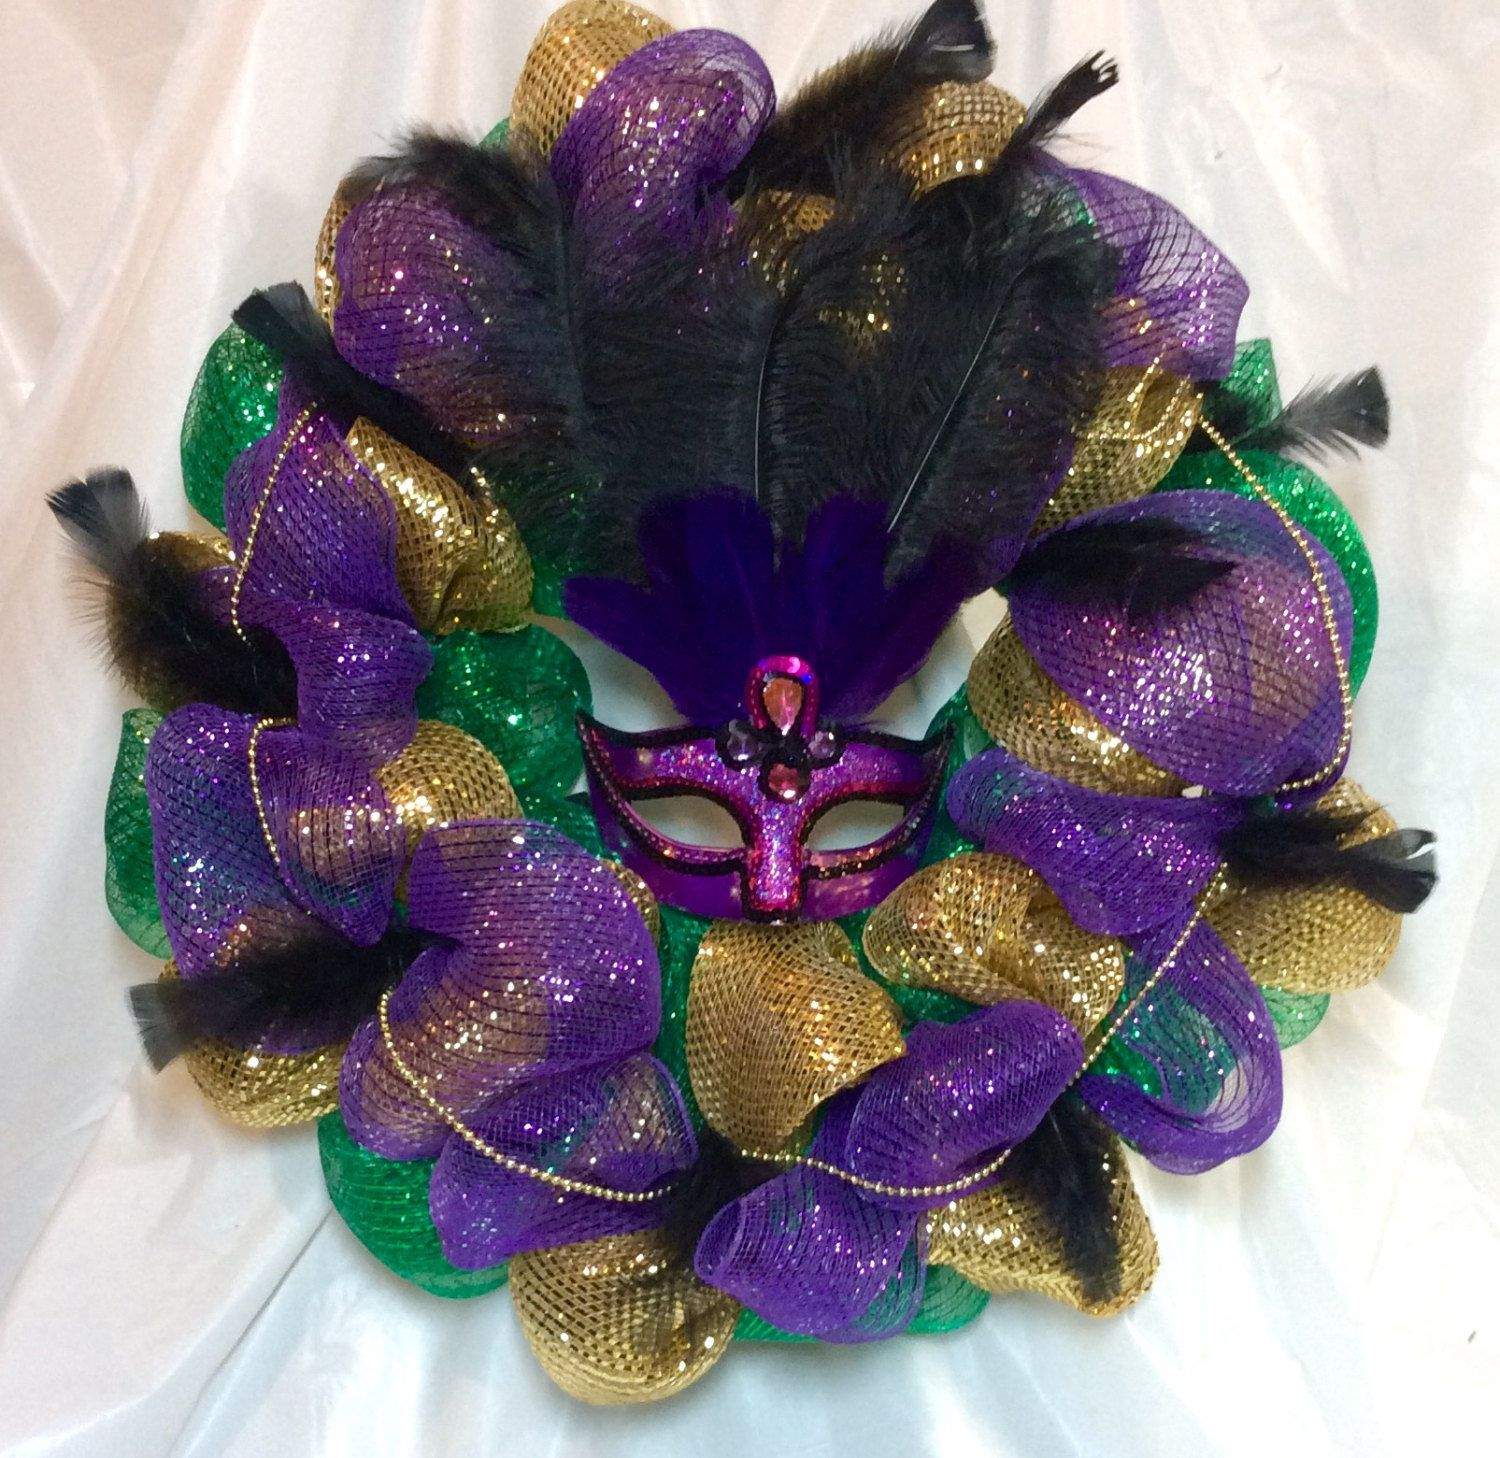 """Mardi Gras wreath. Temptation fuscia mask w/purple, black feathers. Gold, purple, green mesh. Gold beads, black feather accent. 21"""" wreath. by KhQualityCreations on Etsy"""